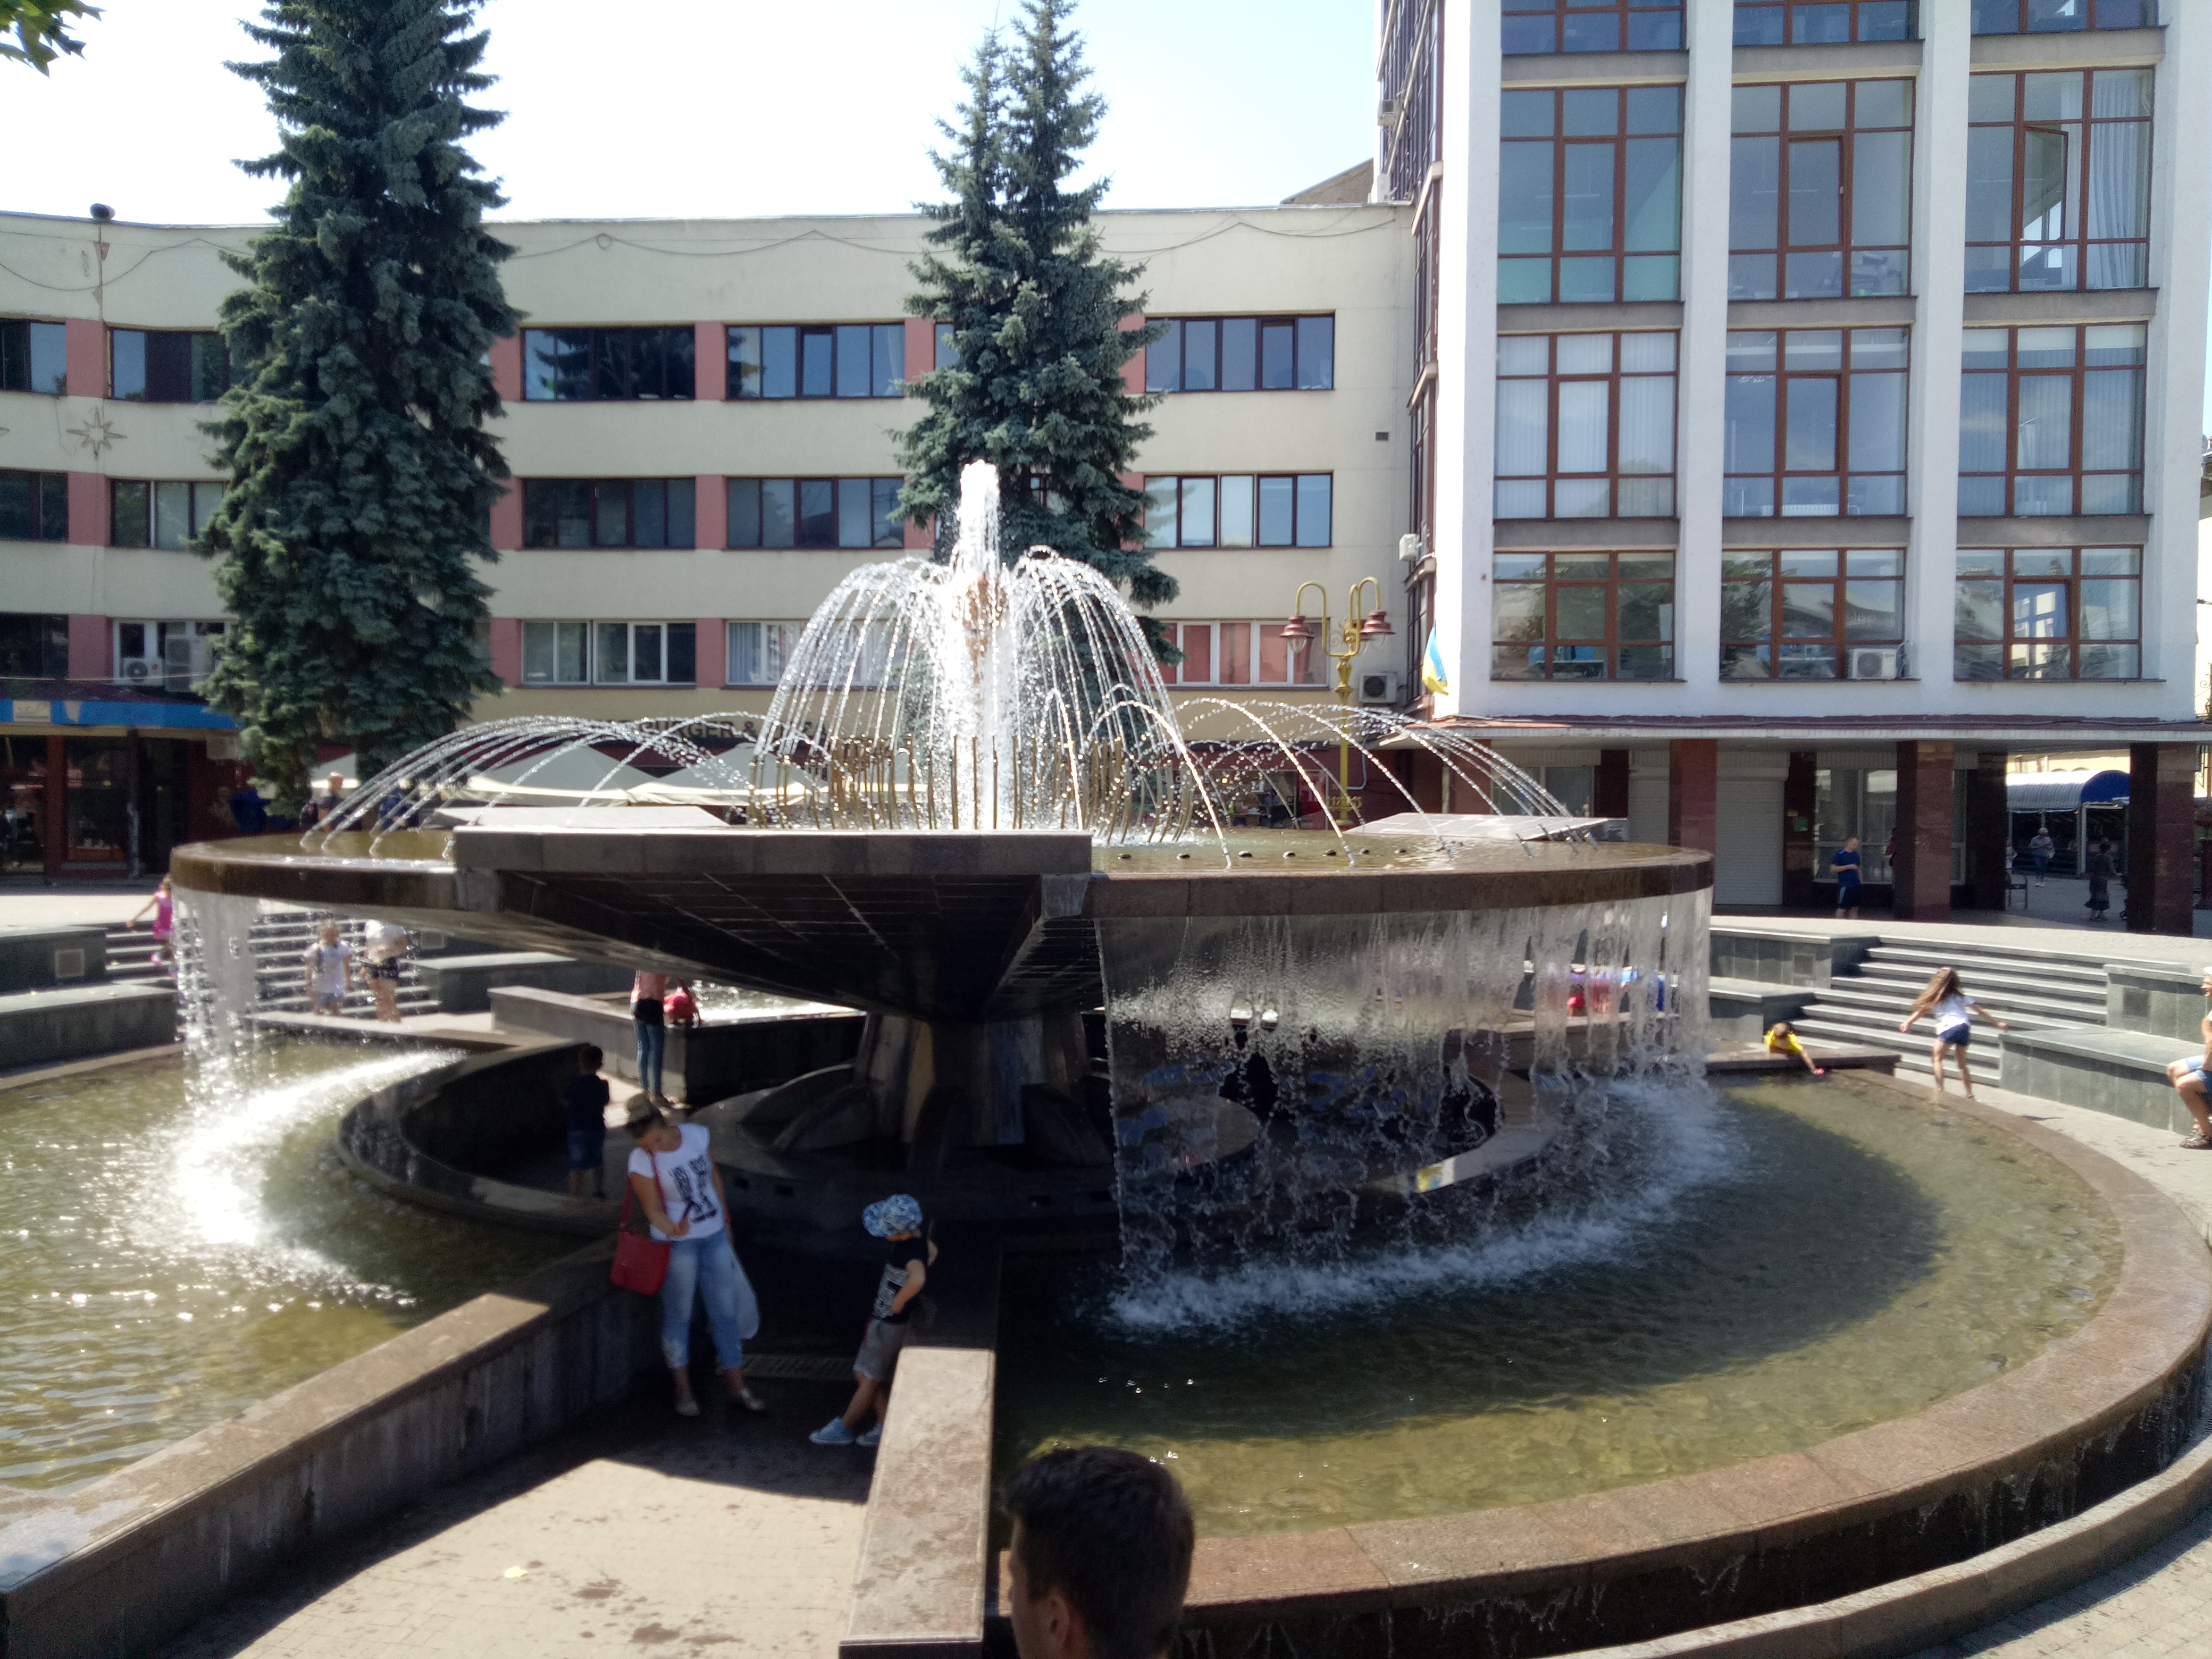 In Square (Rynok---Bazaar), Maydan Vichevy Fountain is full of children with their mothers in summer and gives you a contact with rising nation of Ukrainians. If you descend the steps below the fountain's main 'bowl', you can stand beneath the cascading water without getting wet.